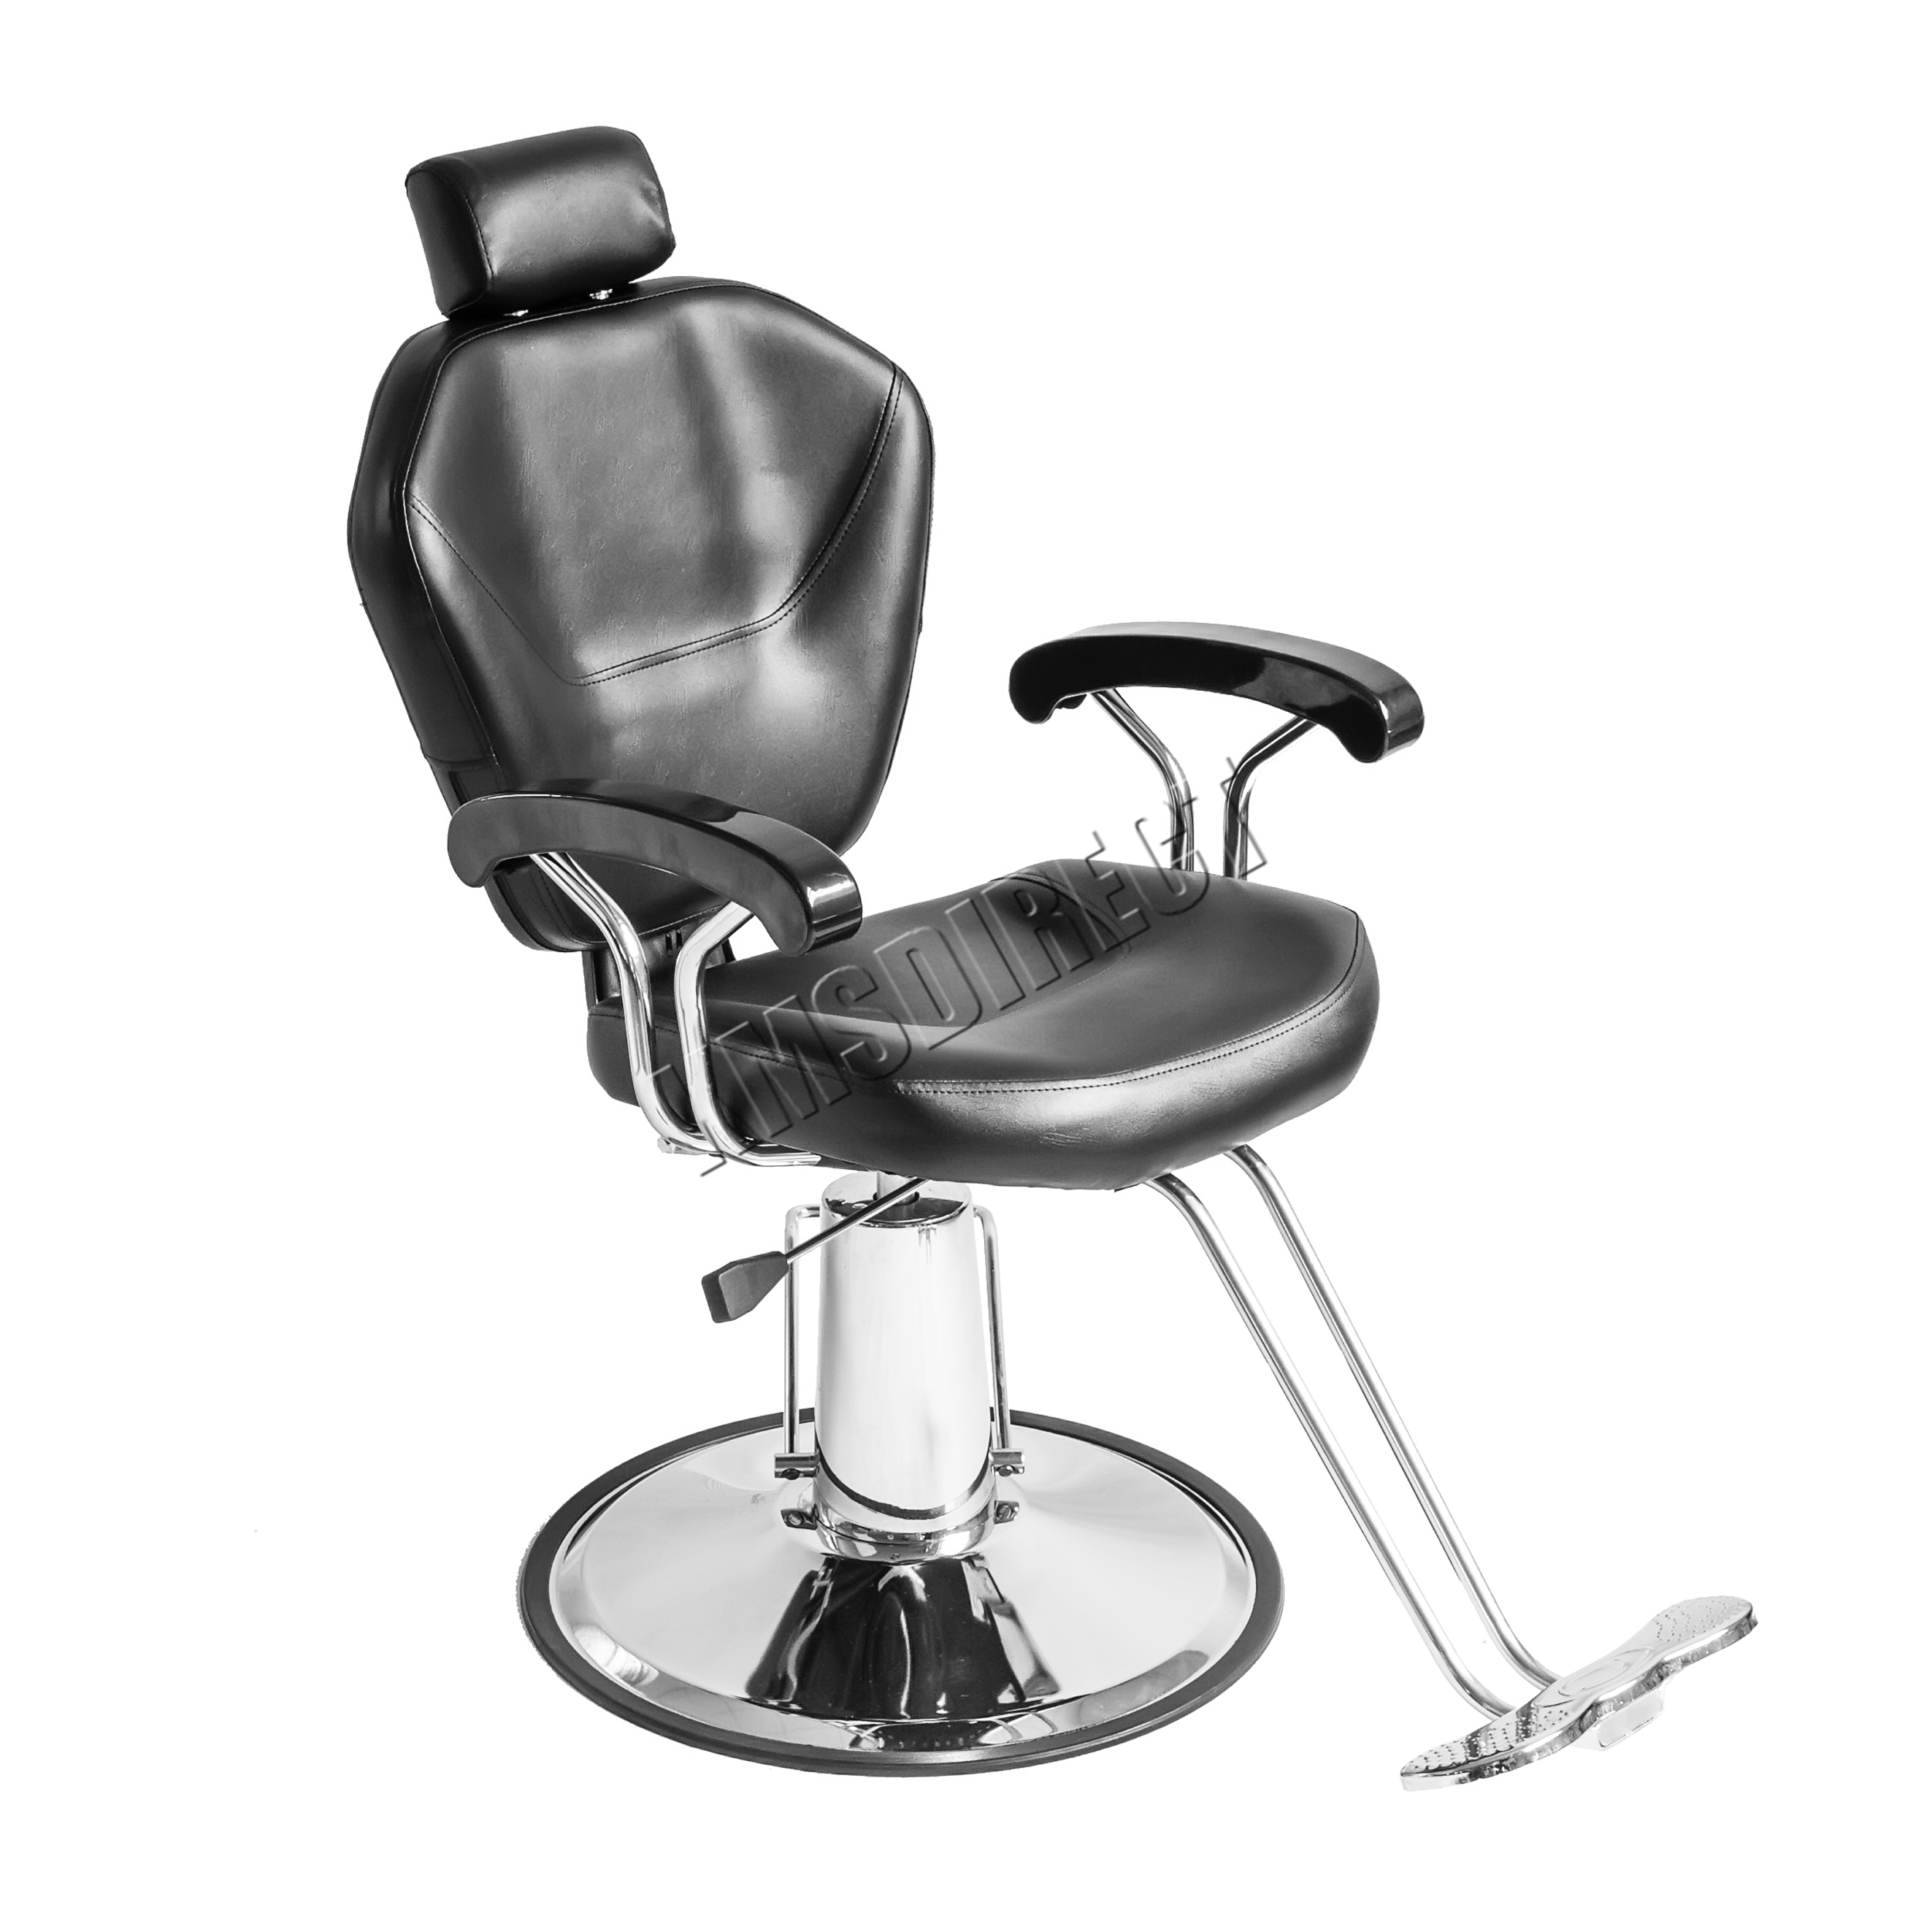 foxhunter salon barber hydraulic reclining chair hairdressing beauty tattoo sc01 ebay. Black Bedroom Furniture Sets. Home Design Ideas